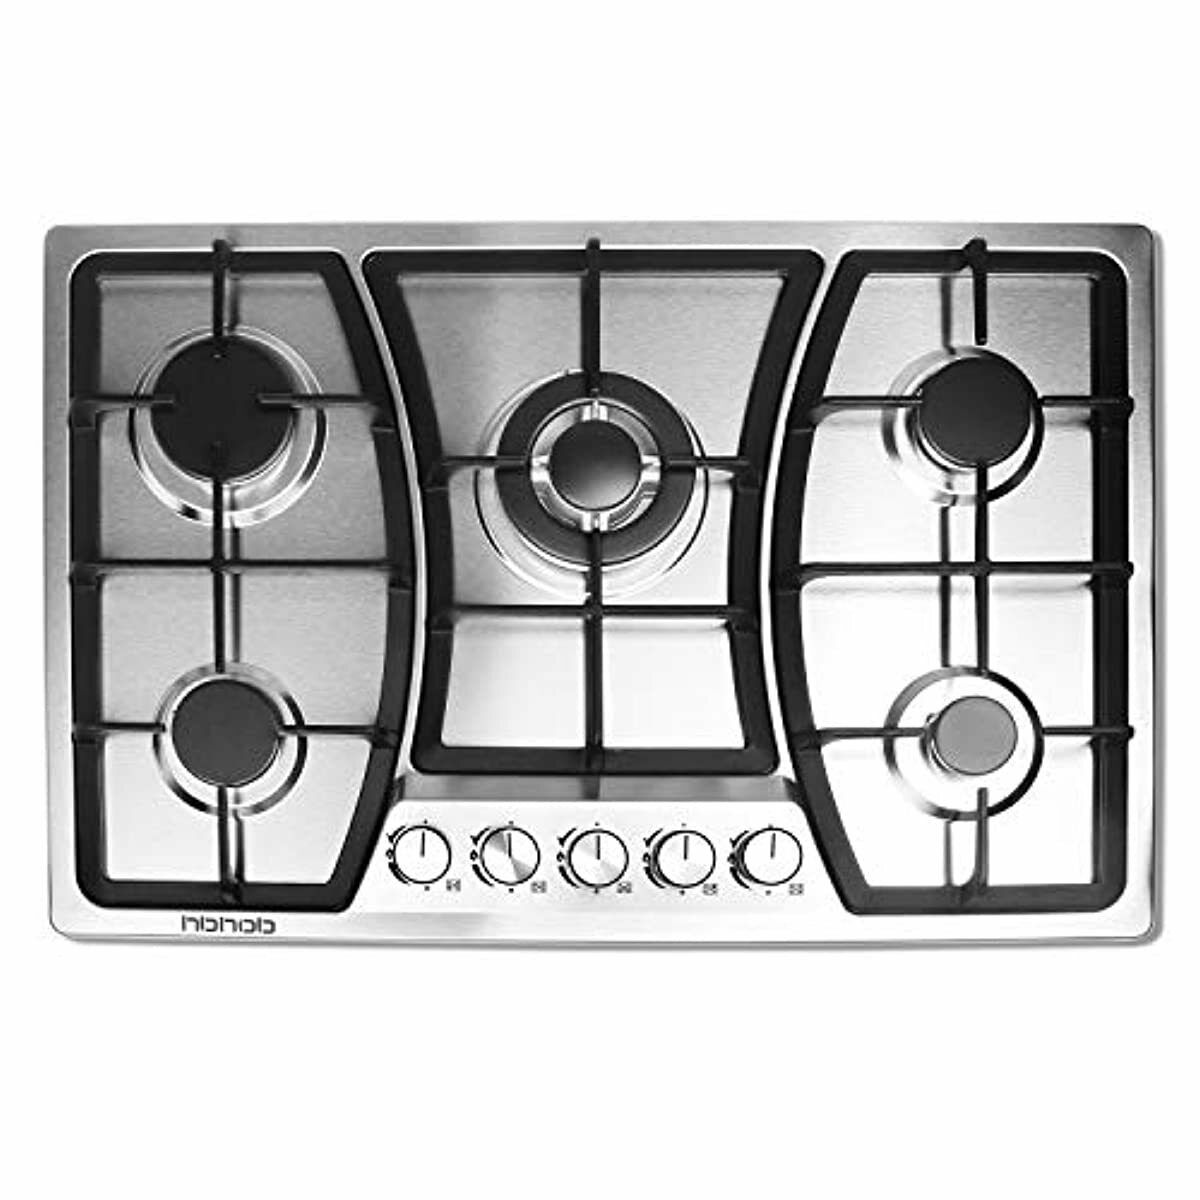 30 Inches Gas Stove Stainless Oven 5 Sealed Burner Top Cook